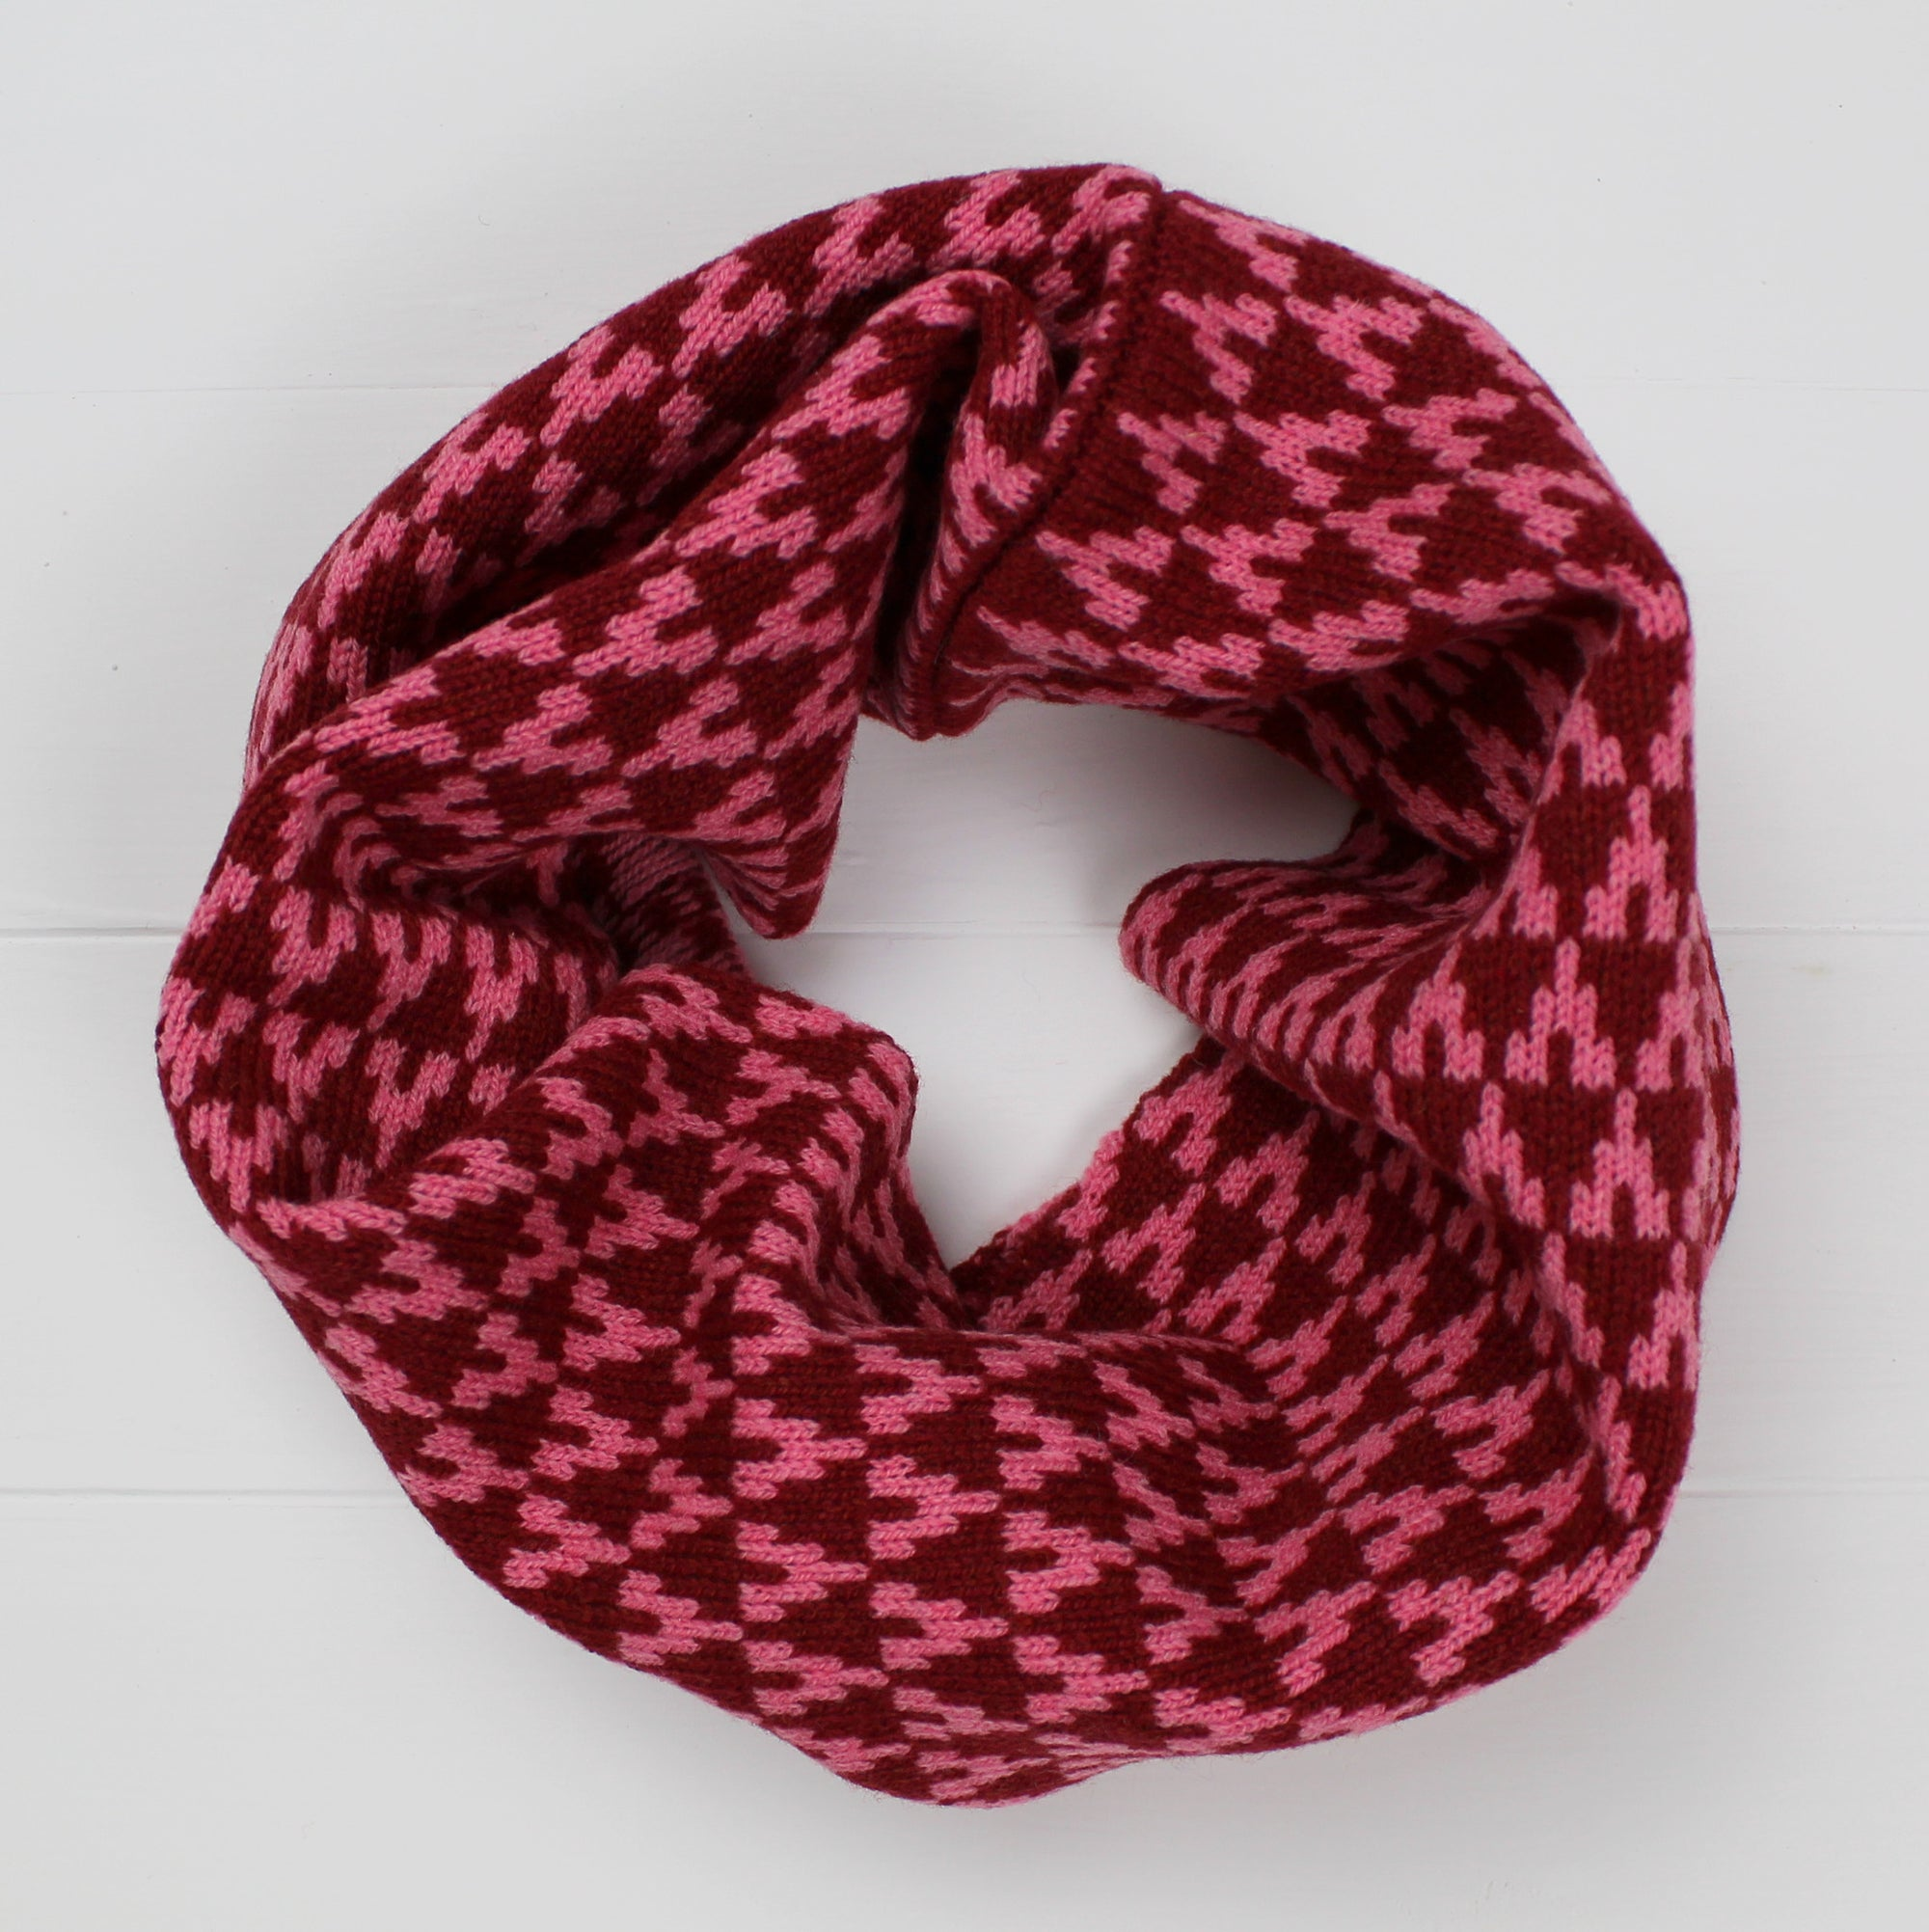 SAMPLE SALE Arrow snood / cowl - red / pink